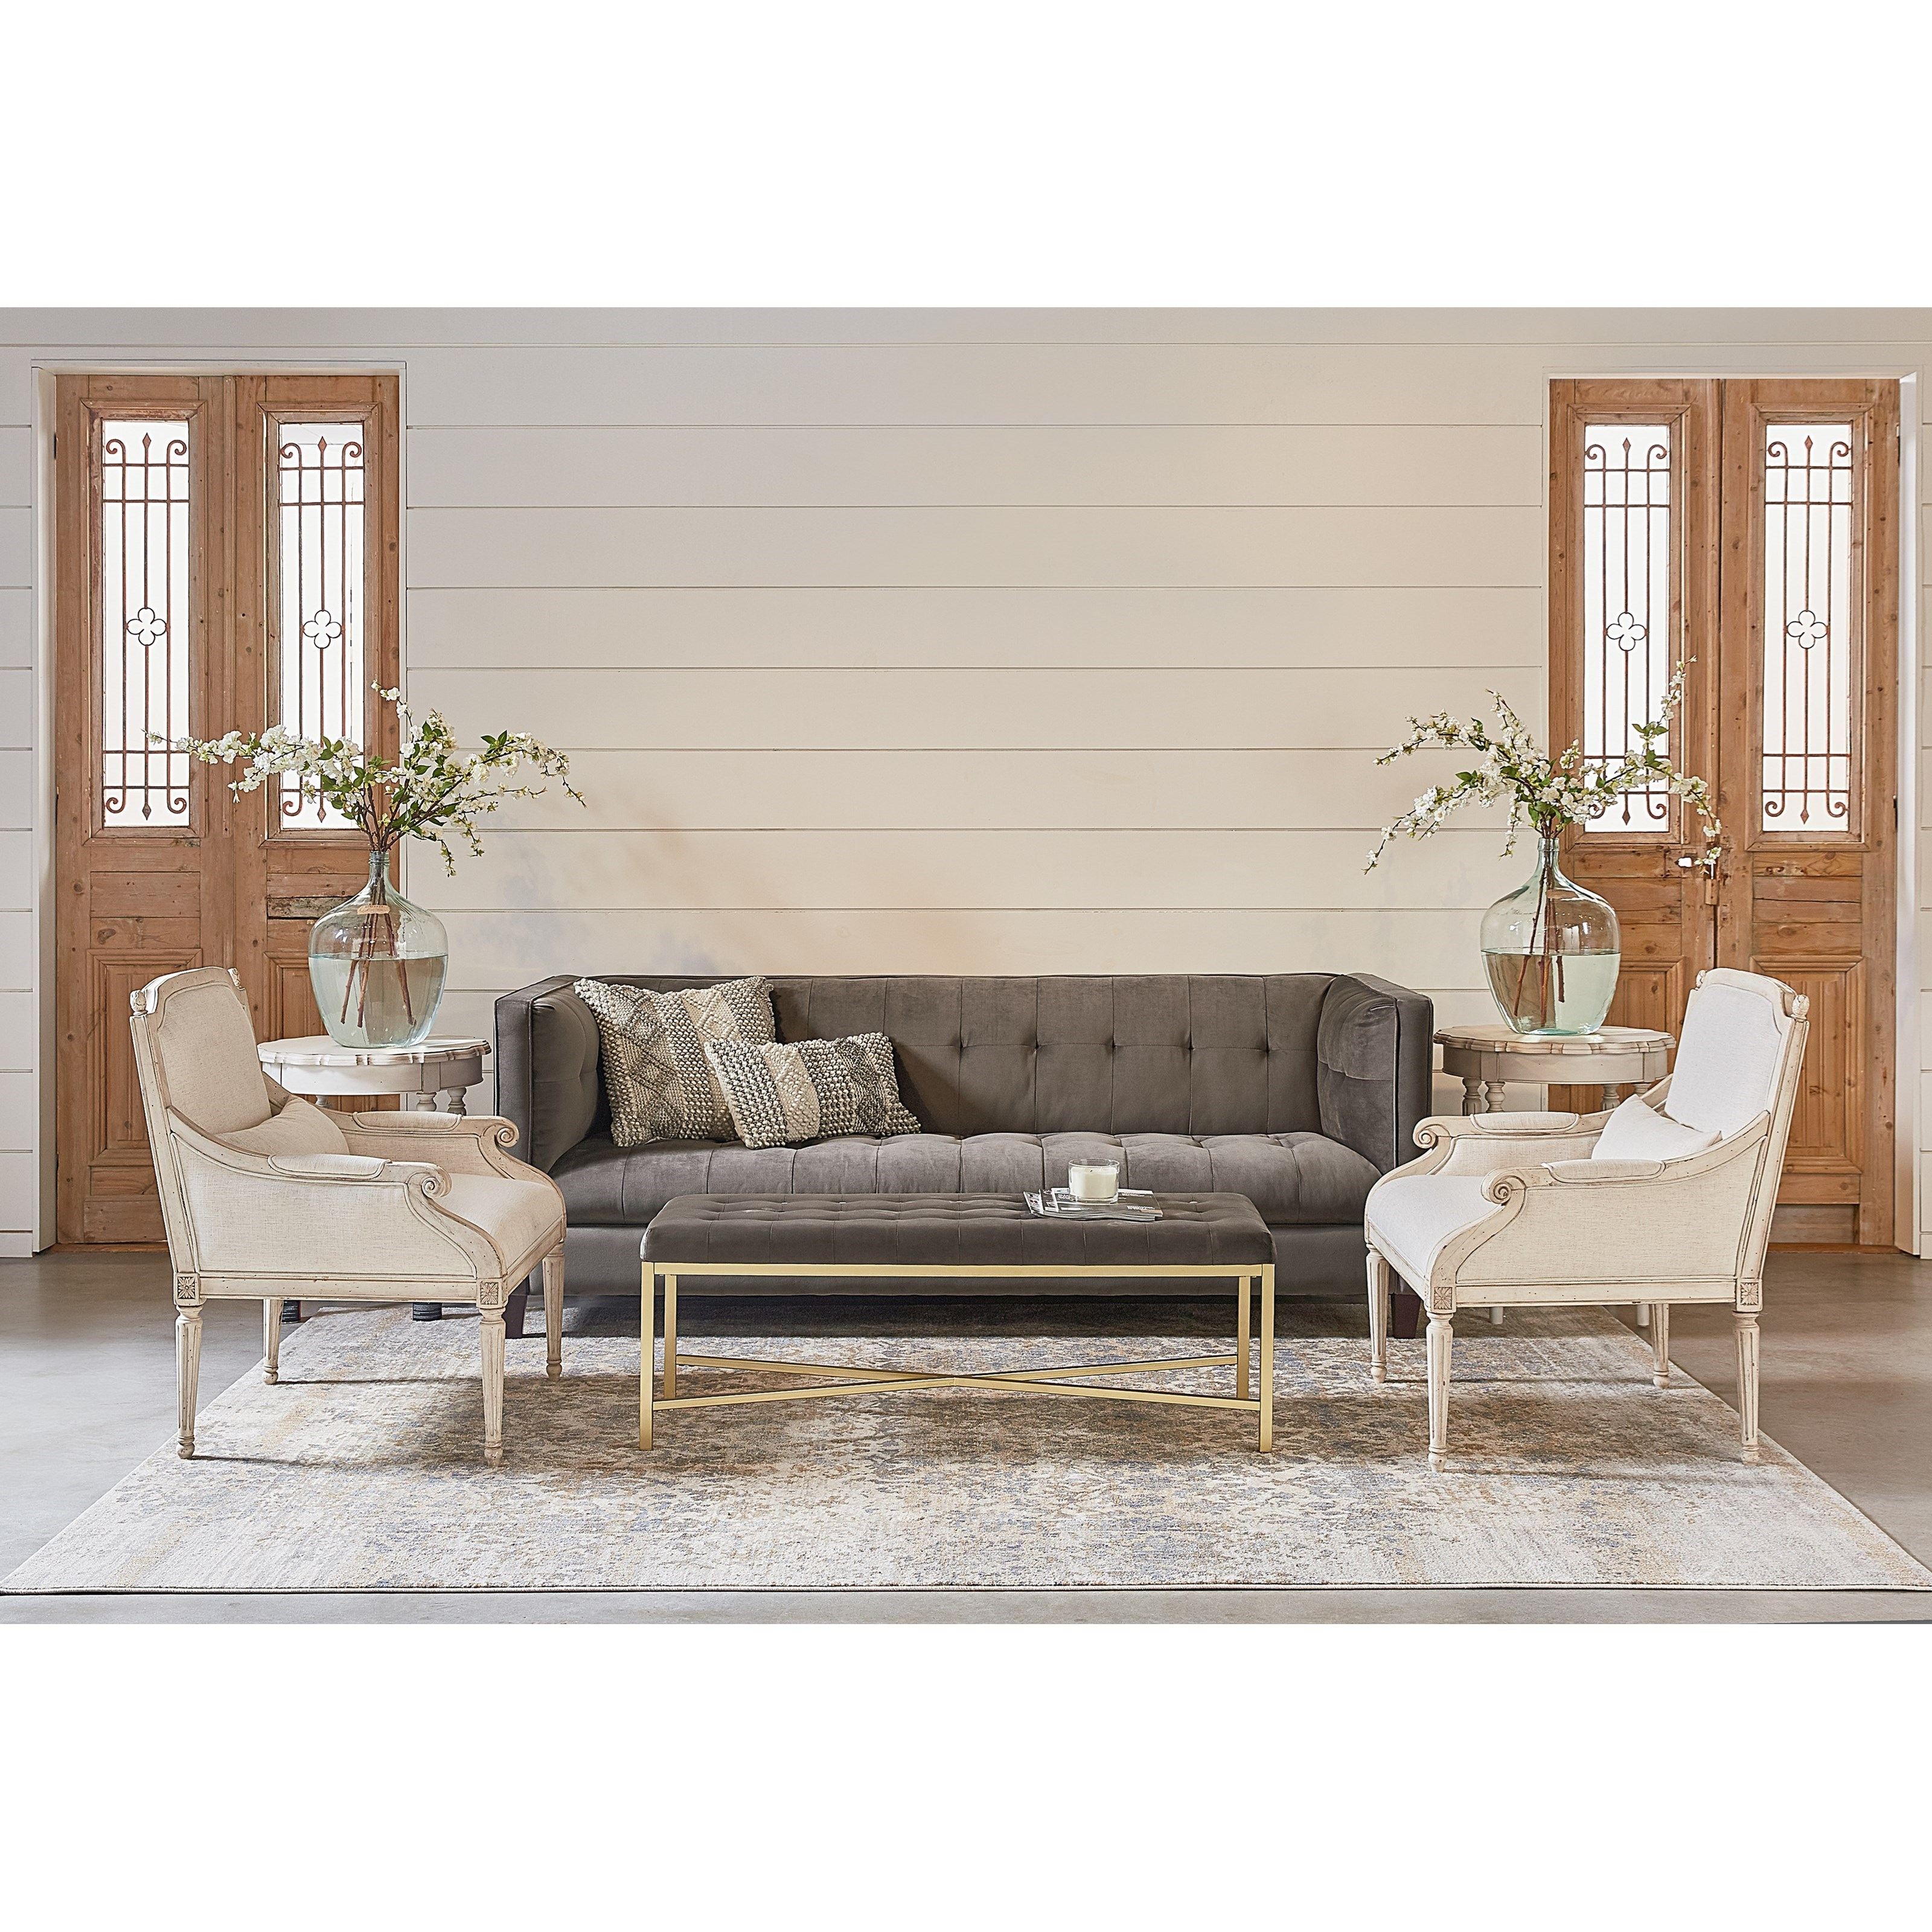 Magnolia Living Room Magnolia Home By Joanna Gaines Tailor Tailor Living Room Group